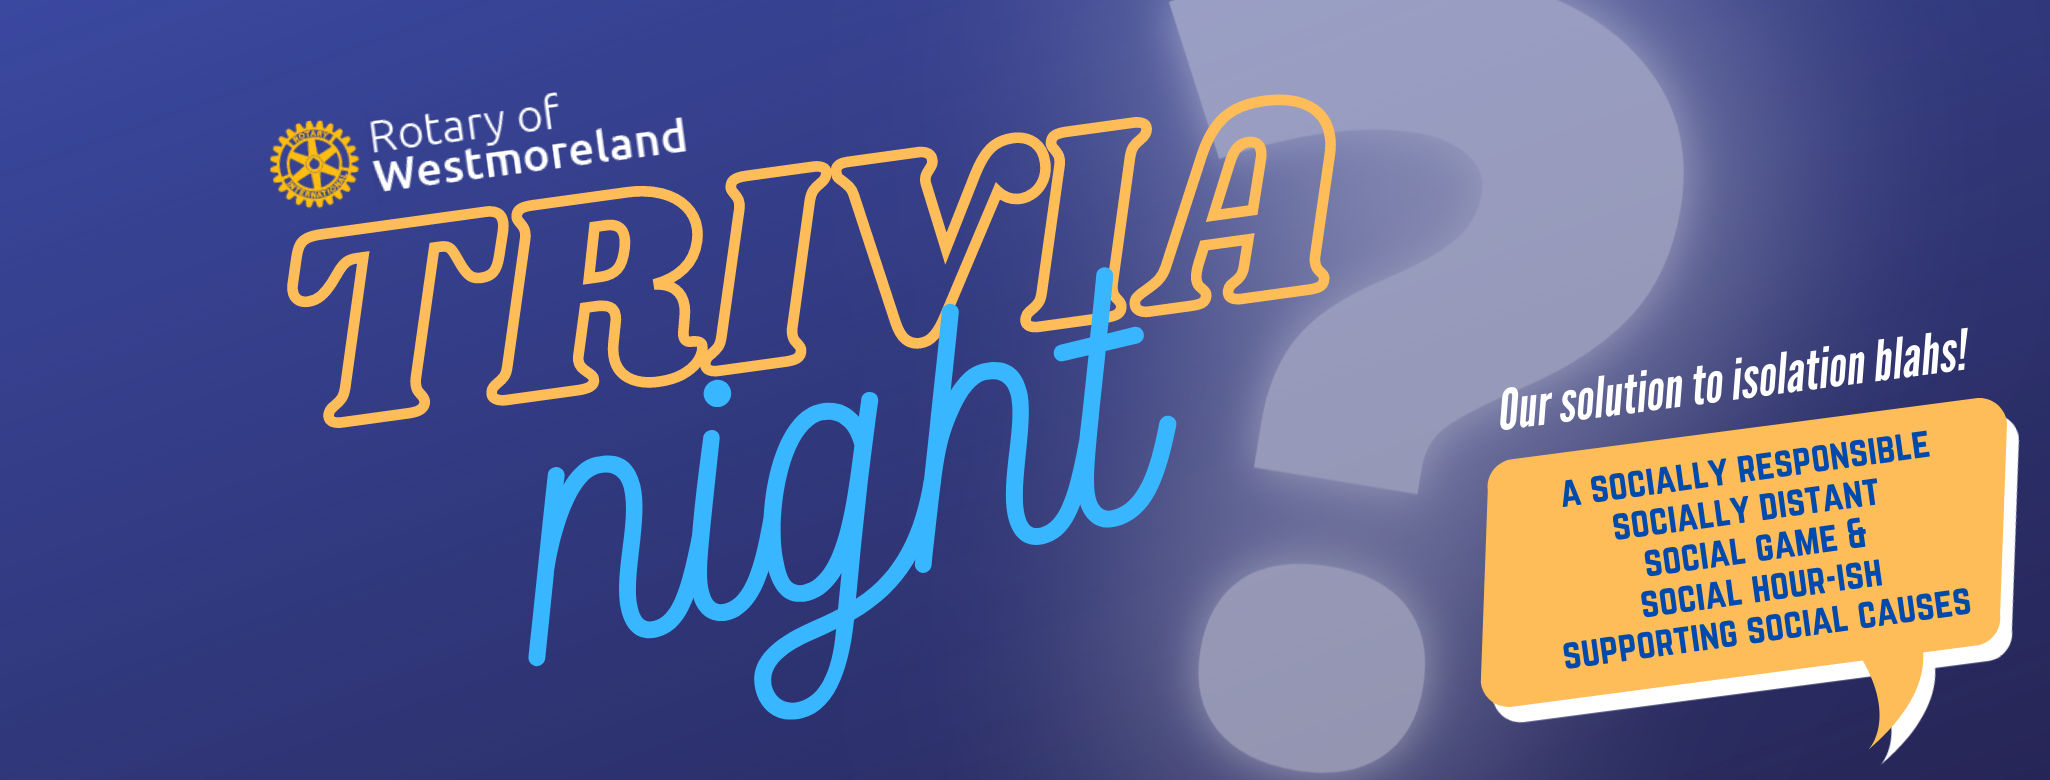 Trivia-night-banner.png